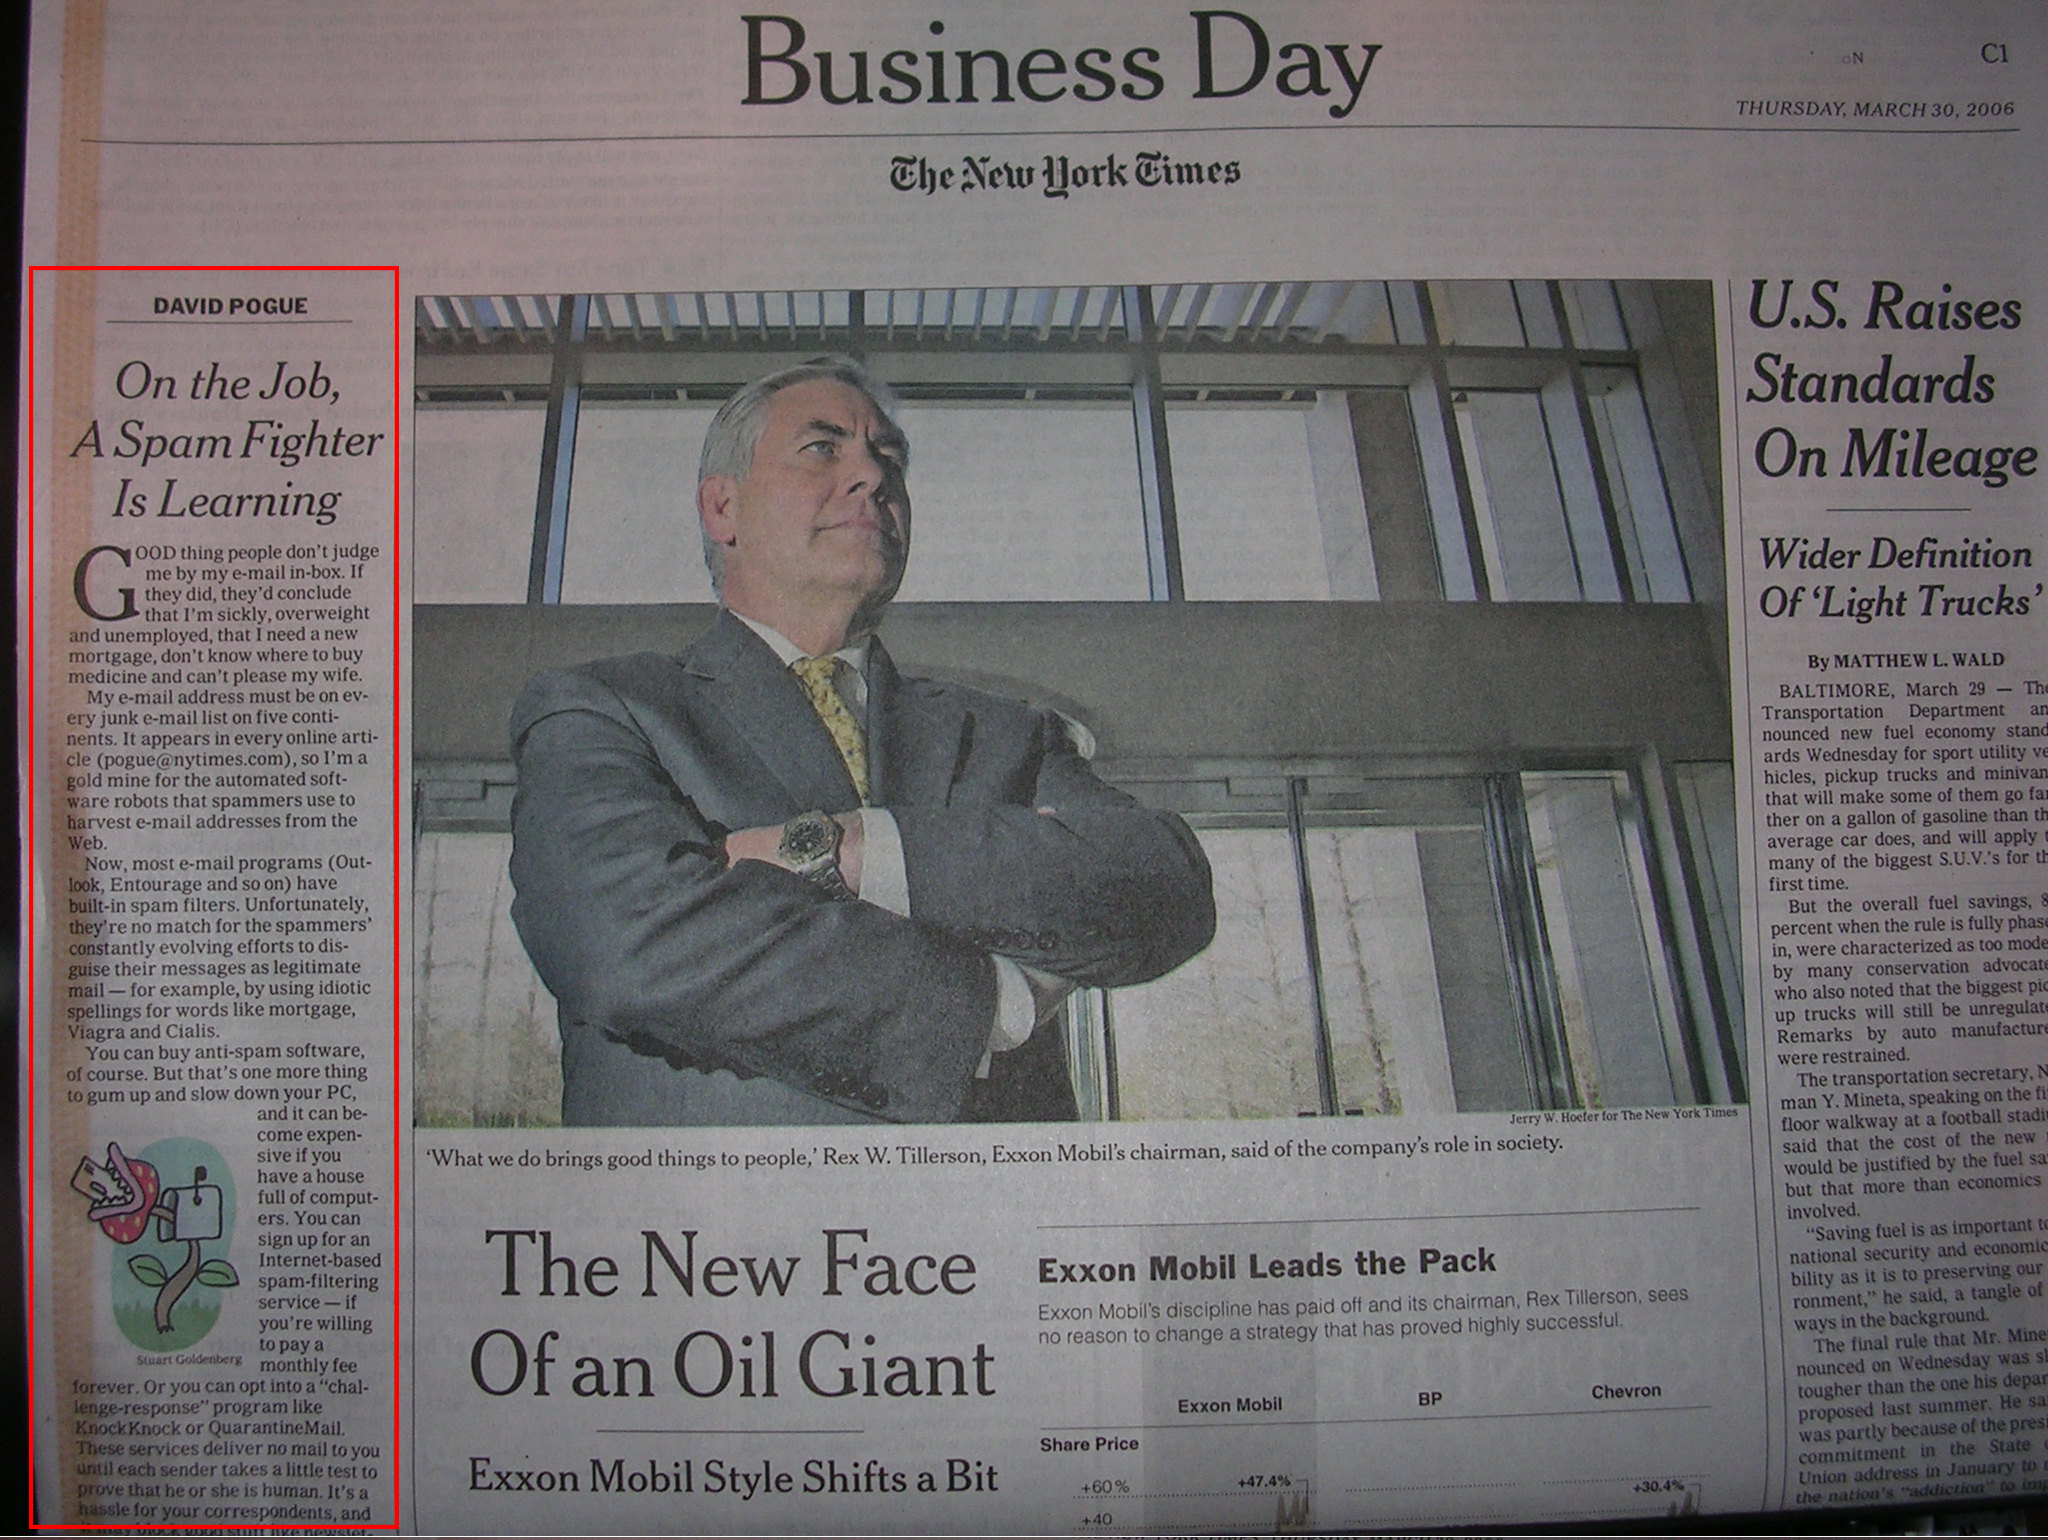 Spam Cube in the New York Times. A picture of a the front page of the New York Times business section featuring a review of the Spam Cube